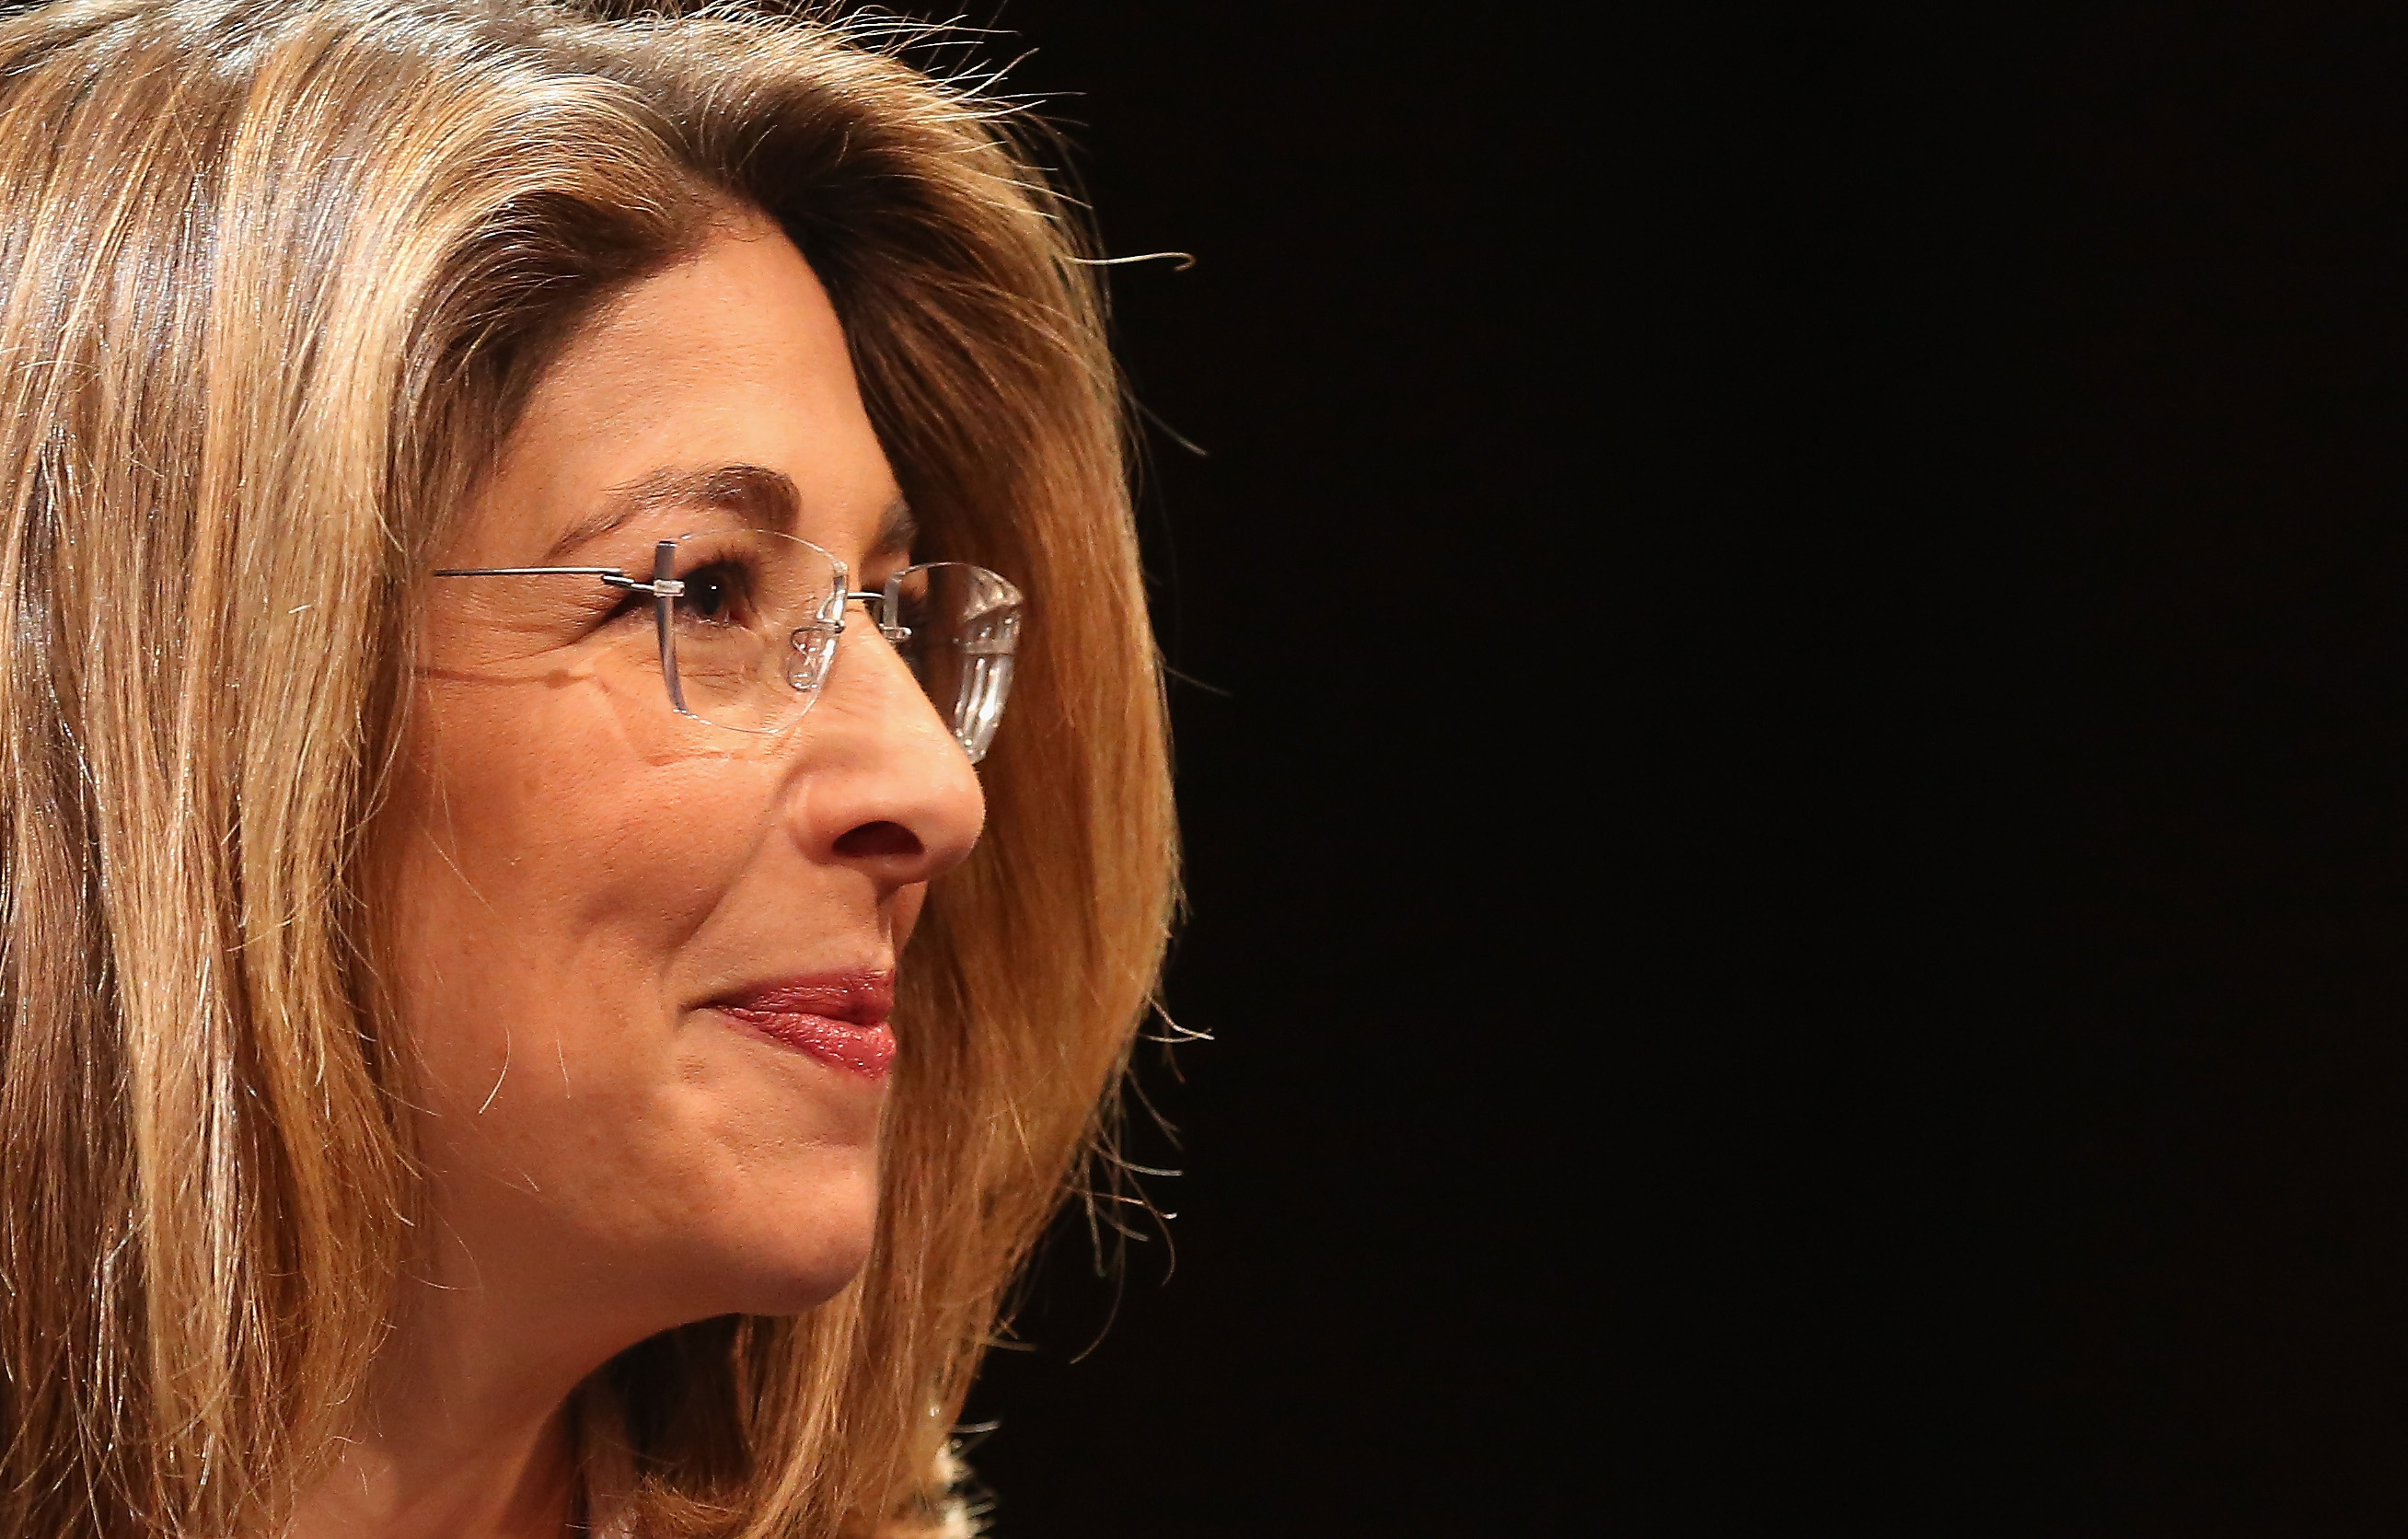 22 March 2015: Naomi Klein, Canadian author, journalist and social activist, who in her latest publication, On Fire: The Burning Case for A Green New Deal, presents the climate emergency's stakes. (Photograph by Adam Berry/Getty Images)